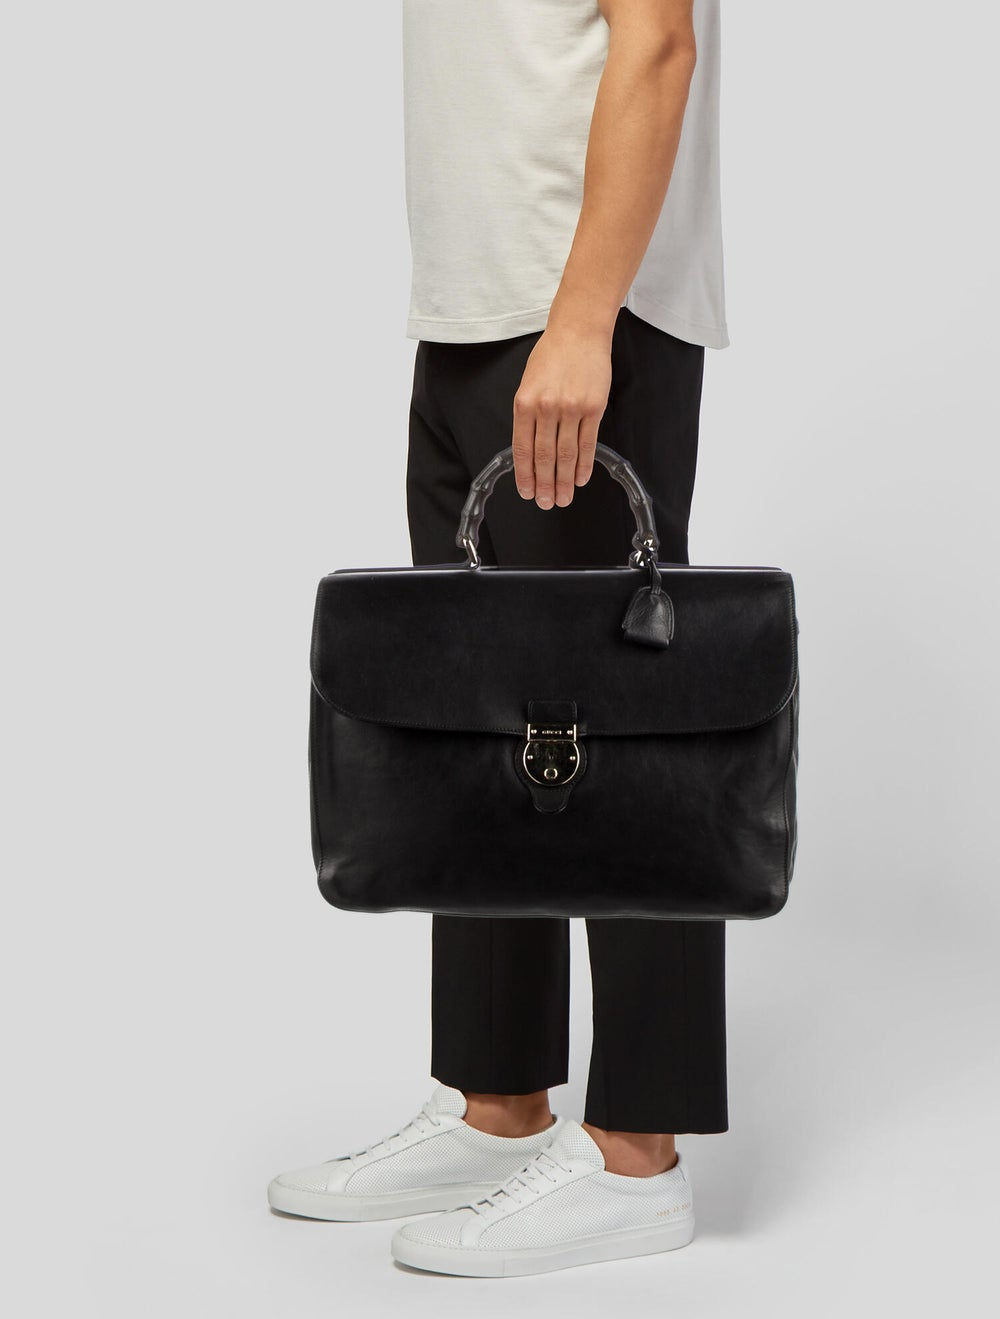 Gucci Bamboo Handle Soft Briefcase Black - image 2